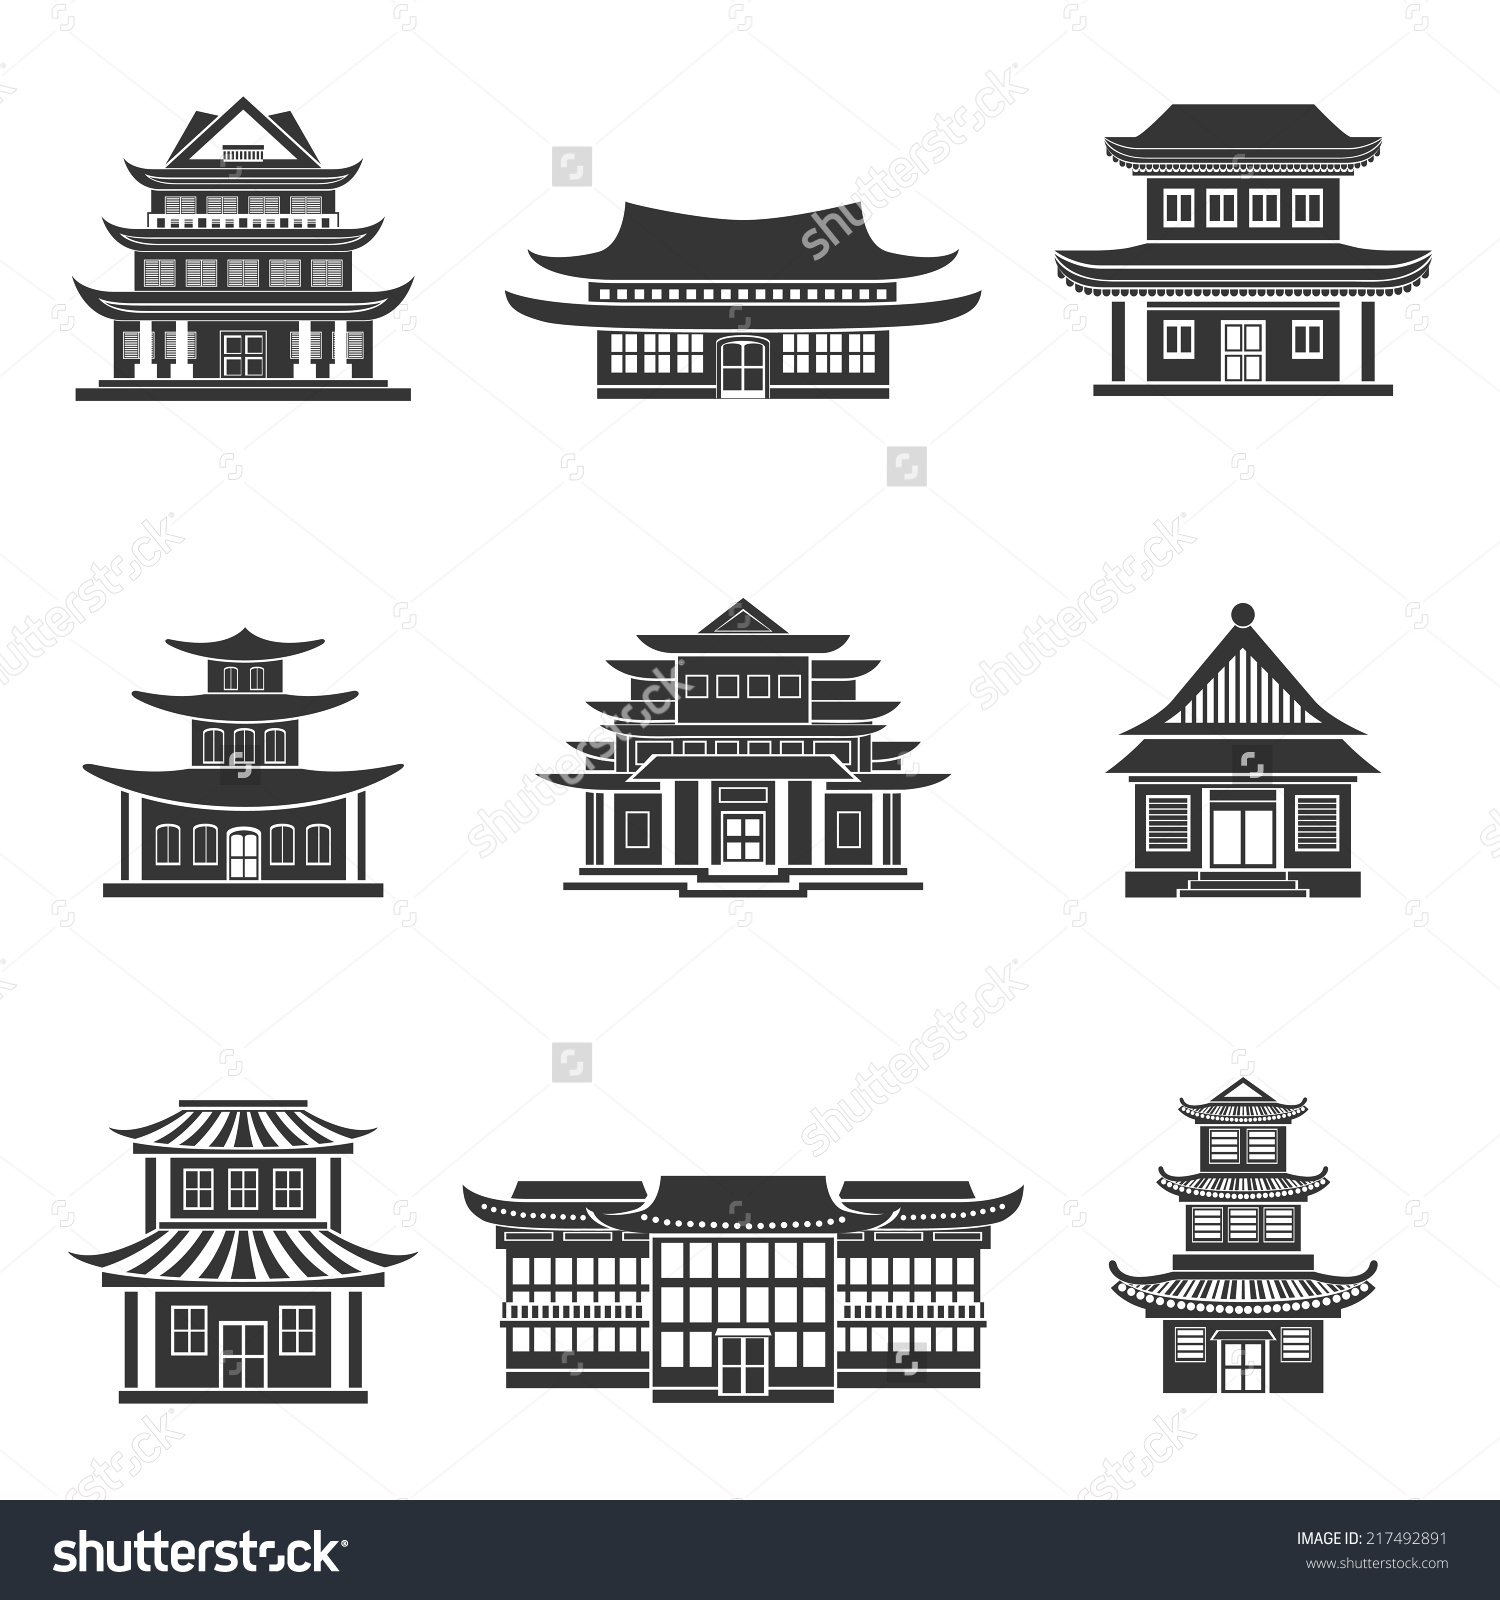 Pagoda clipart chinese house Black temples Chinese oriental